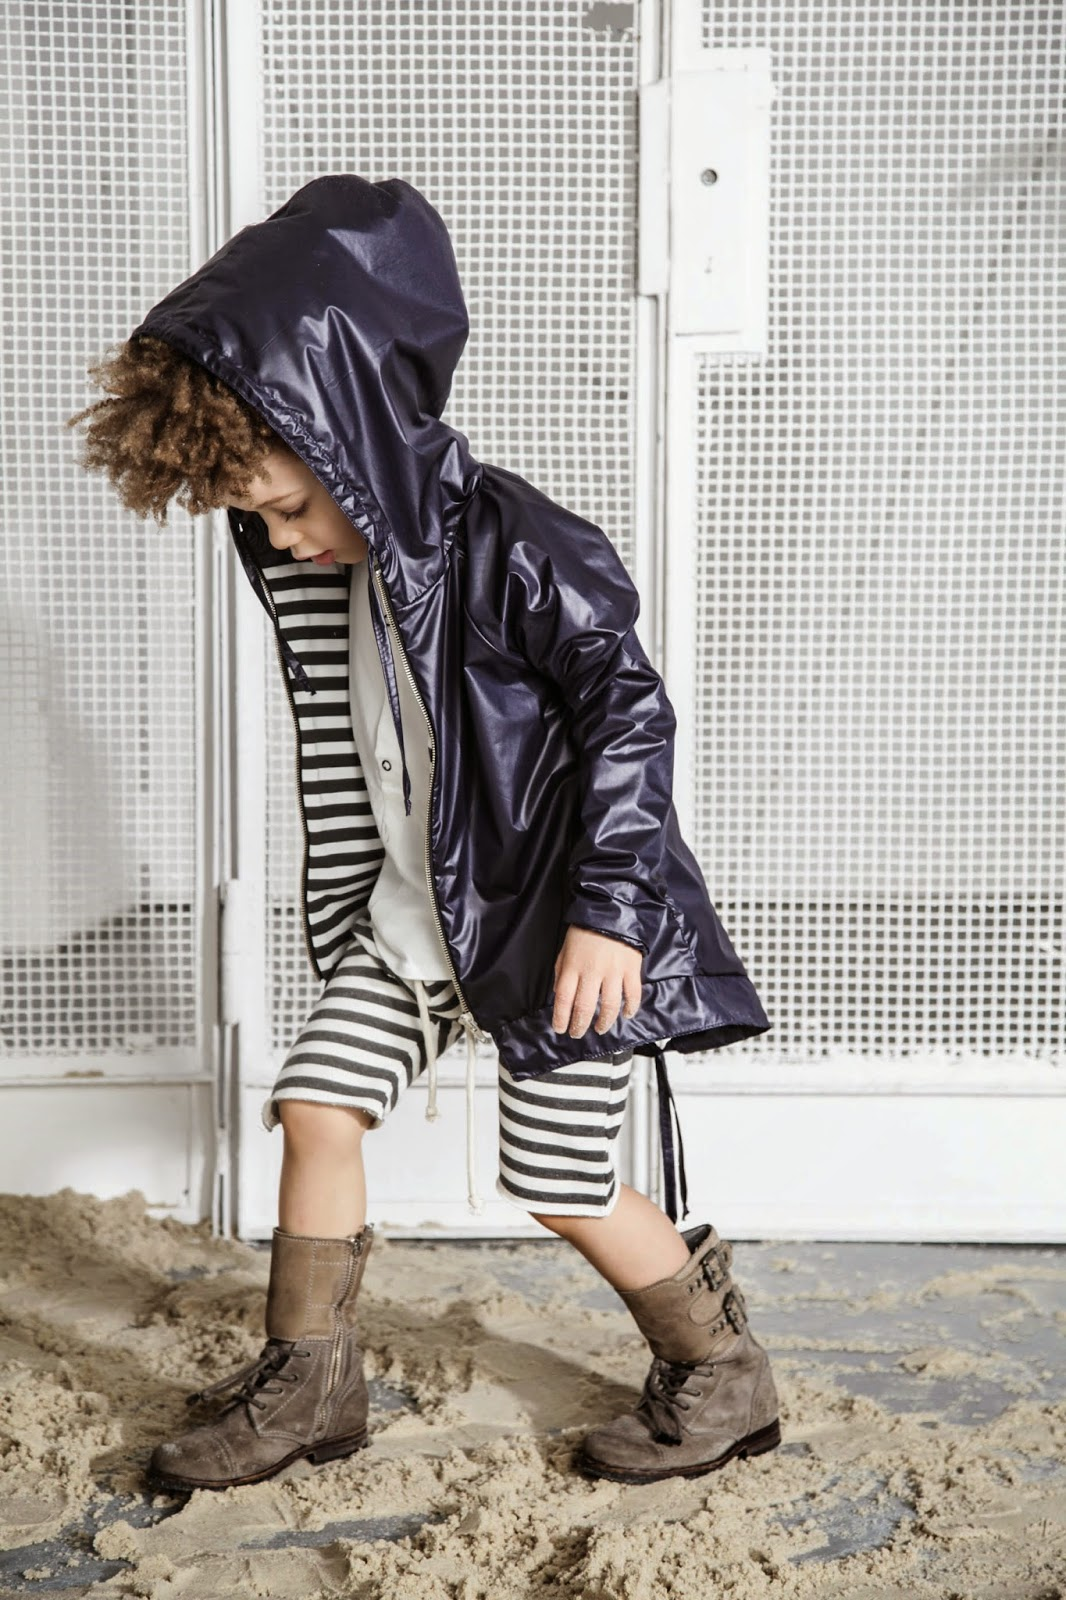 Kloo by Booso - Polish kids fashion spring-summer 2015 collection